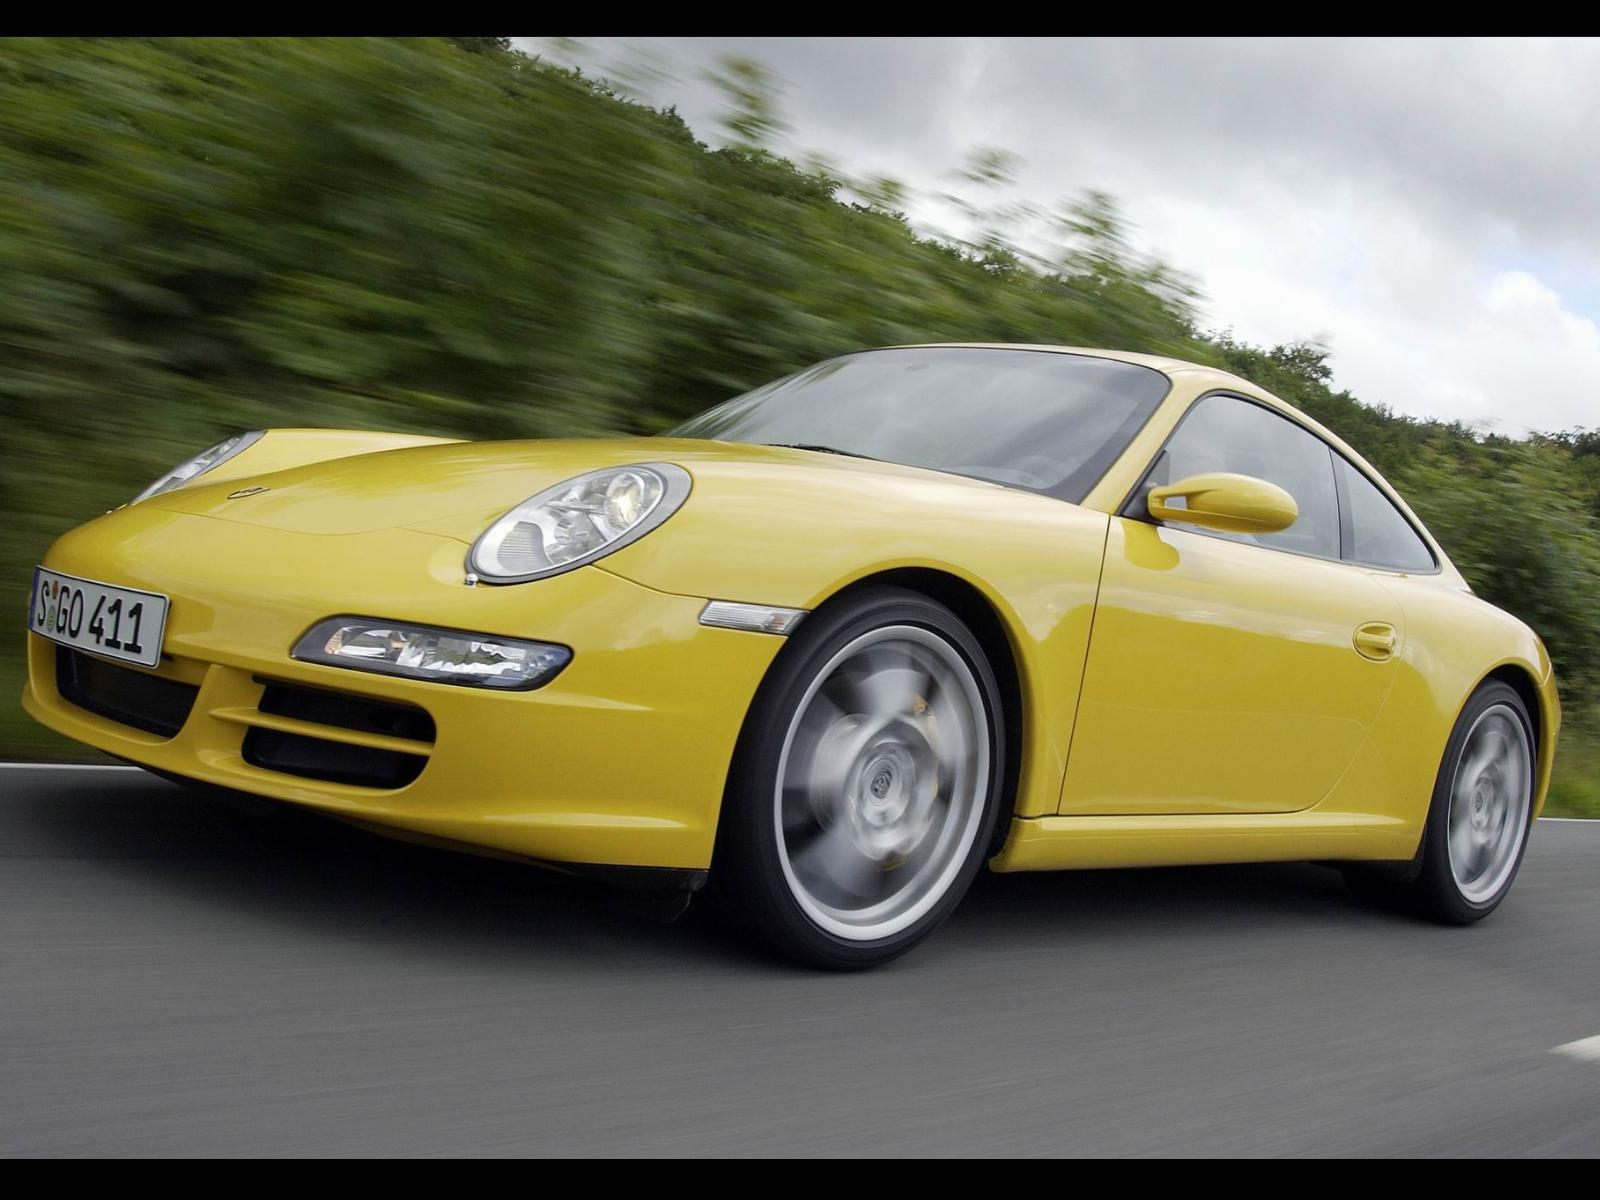 Porsche 997 911 Carrera photo 15452